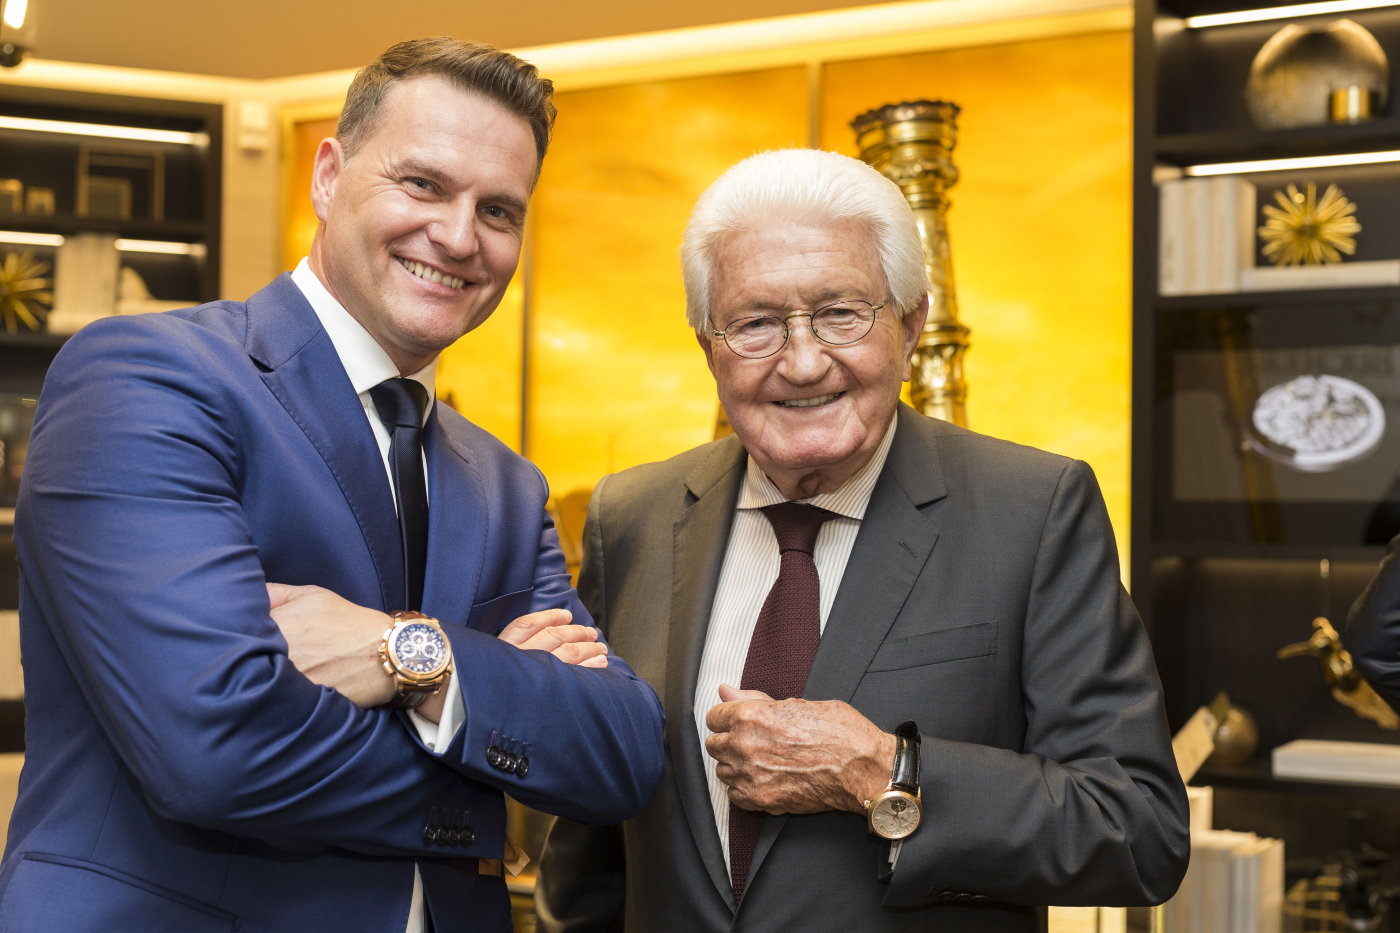 Sascha Moeri and Jörg G. Bucherer: the brand, founded in 1888, is one of the few family-owned Swiss watch manufacturers to have been run by the founding family continuously to this day.